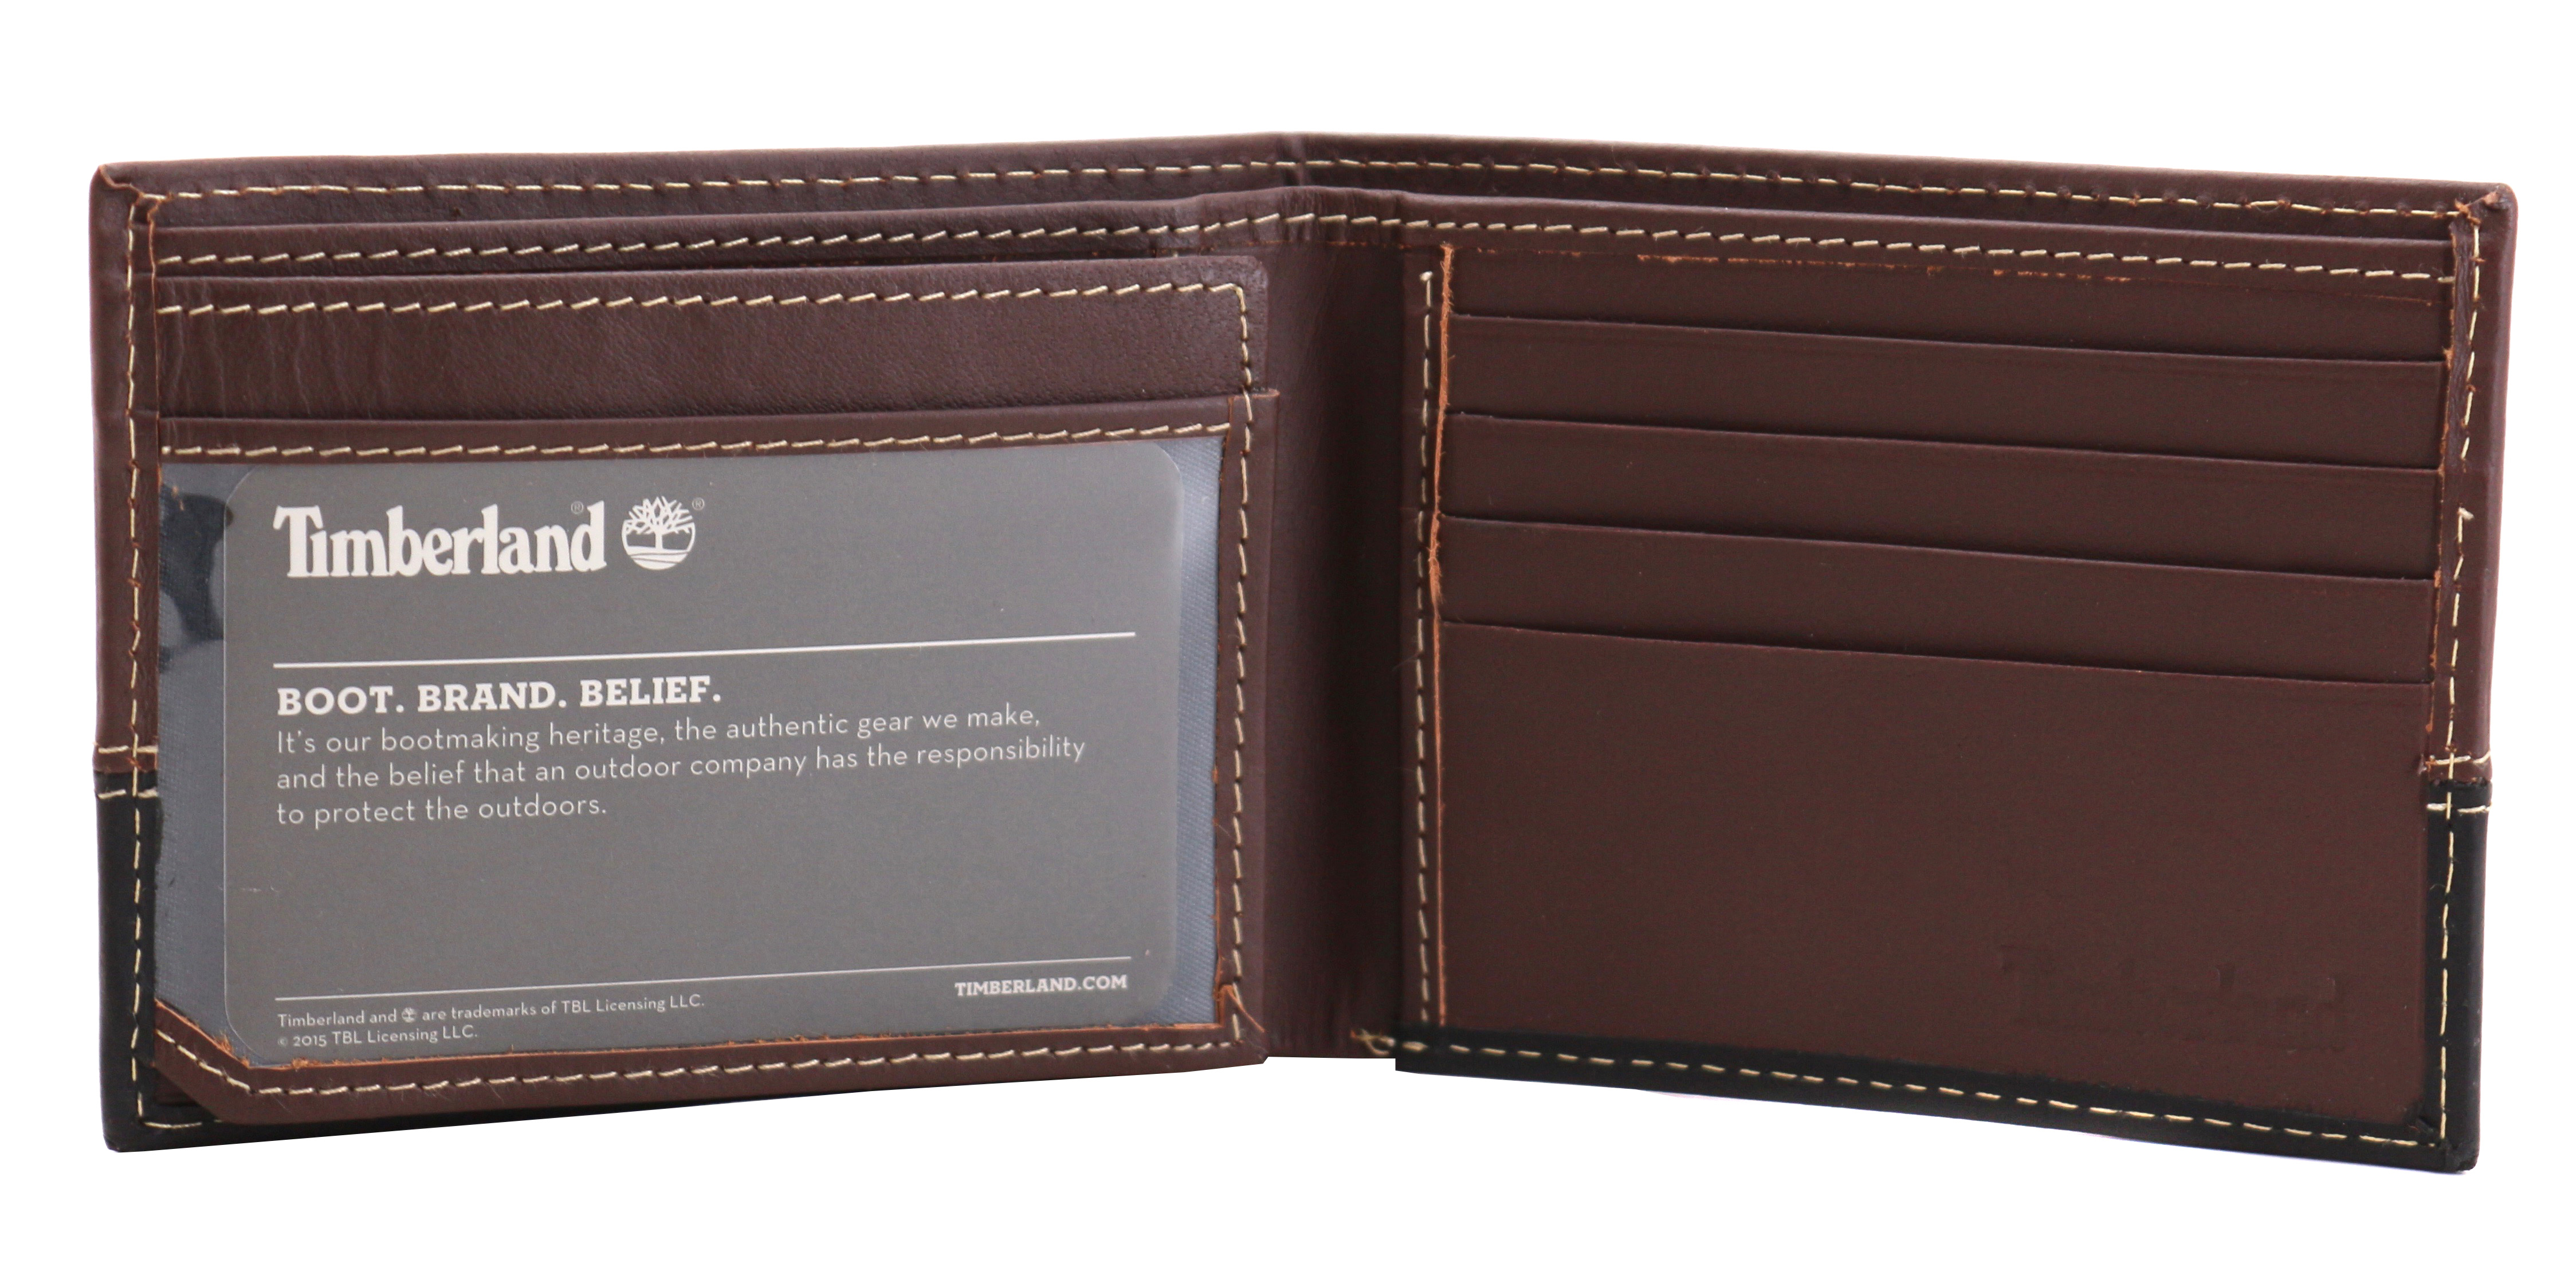 Timberland-Men-039-s-Genuine-Two-Tone-Leather-Credit-Card-Billfold-Commuter-Wallet thumbnail 4